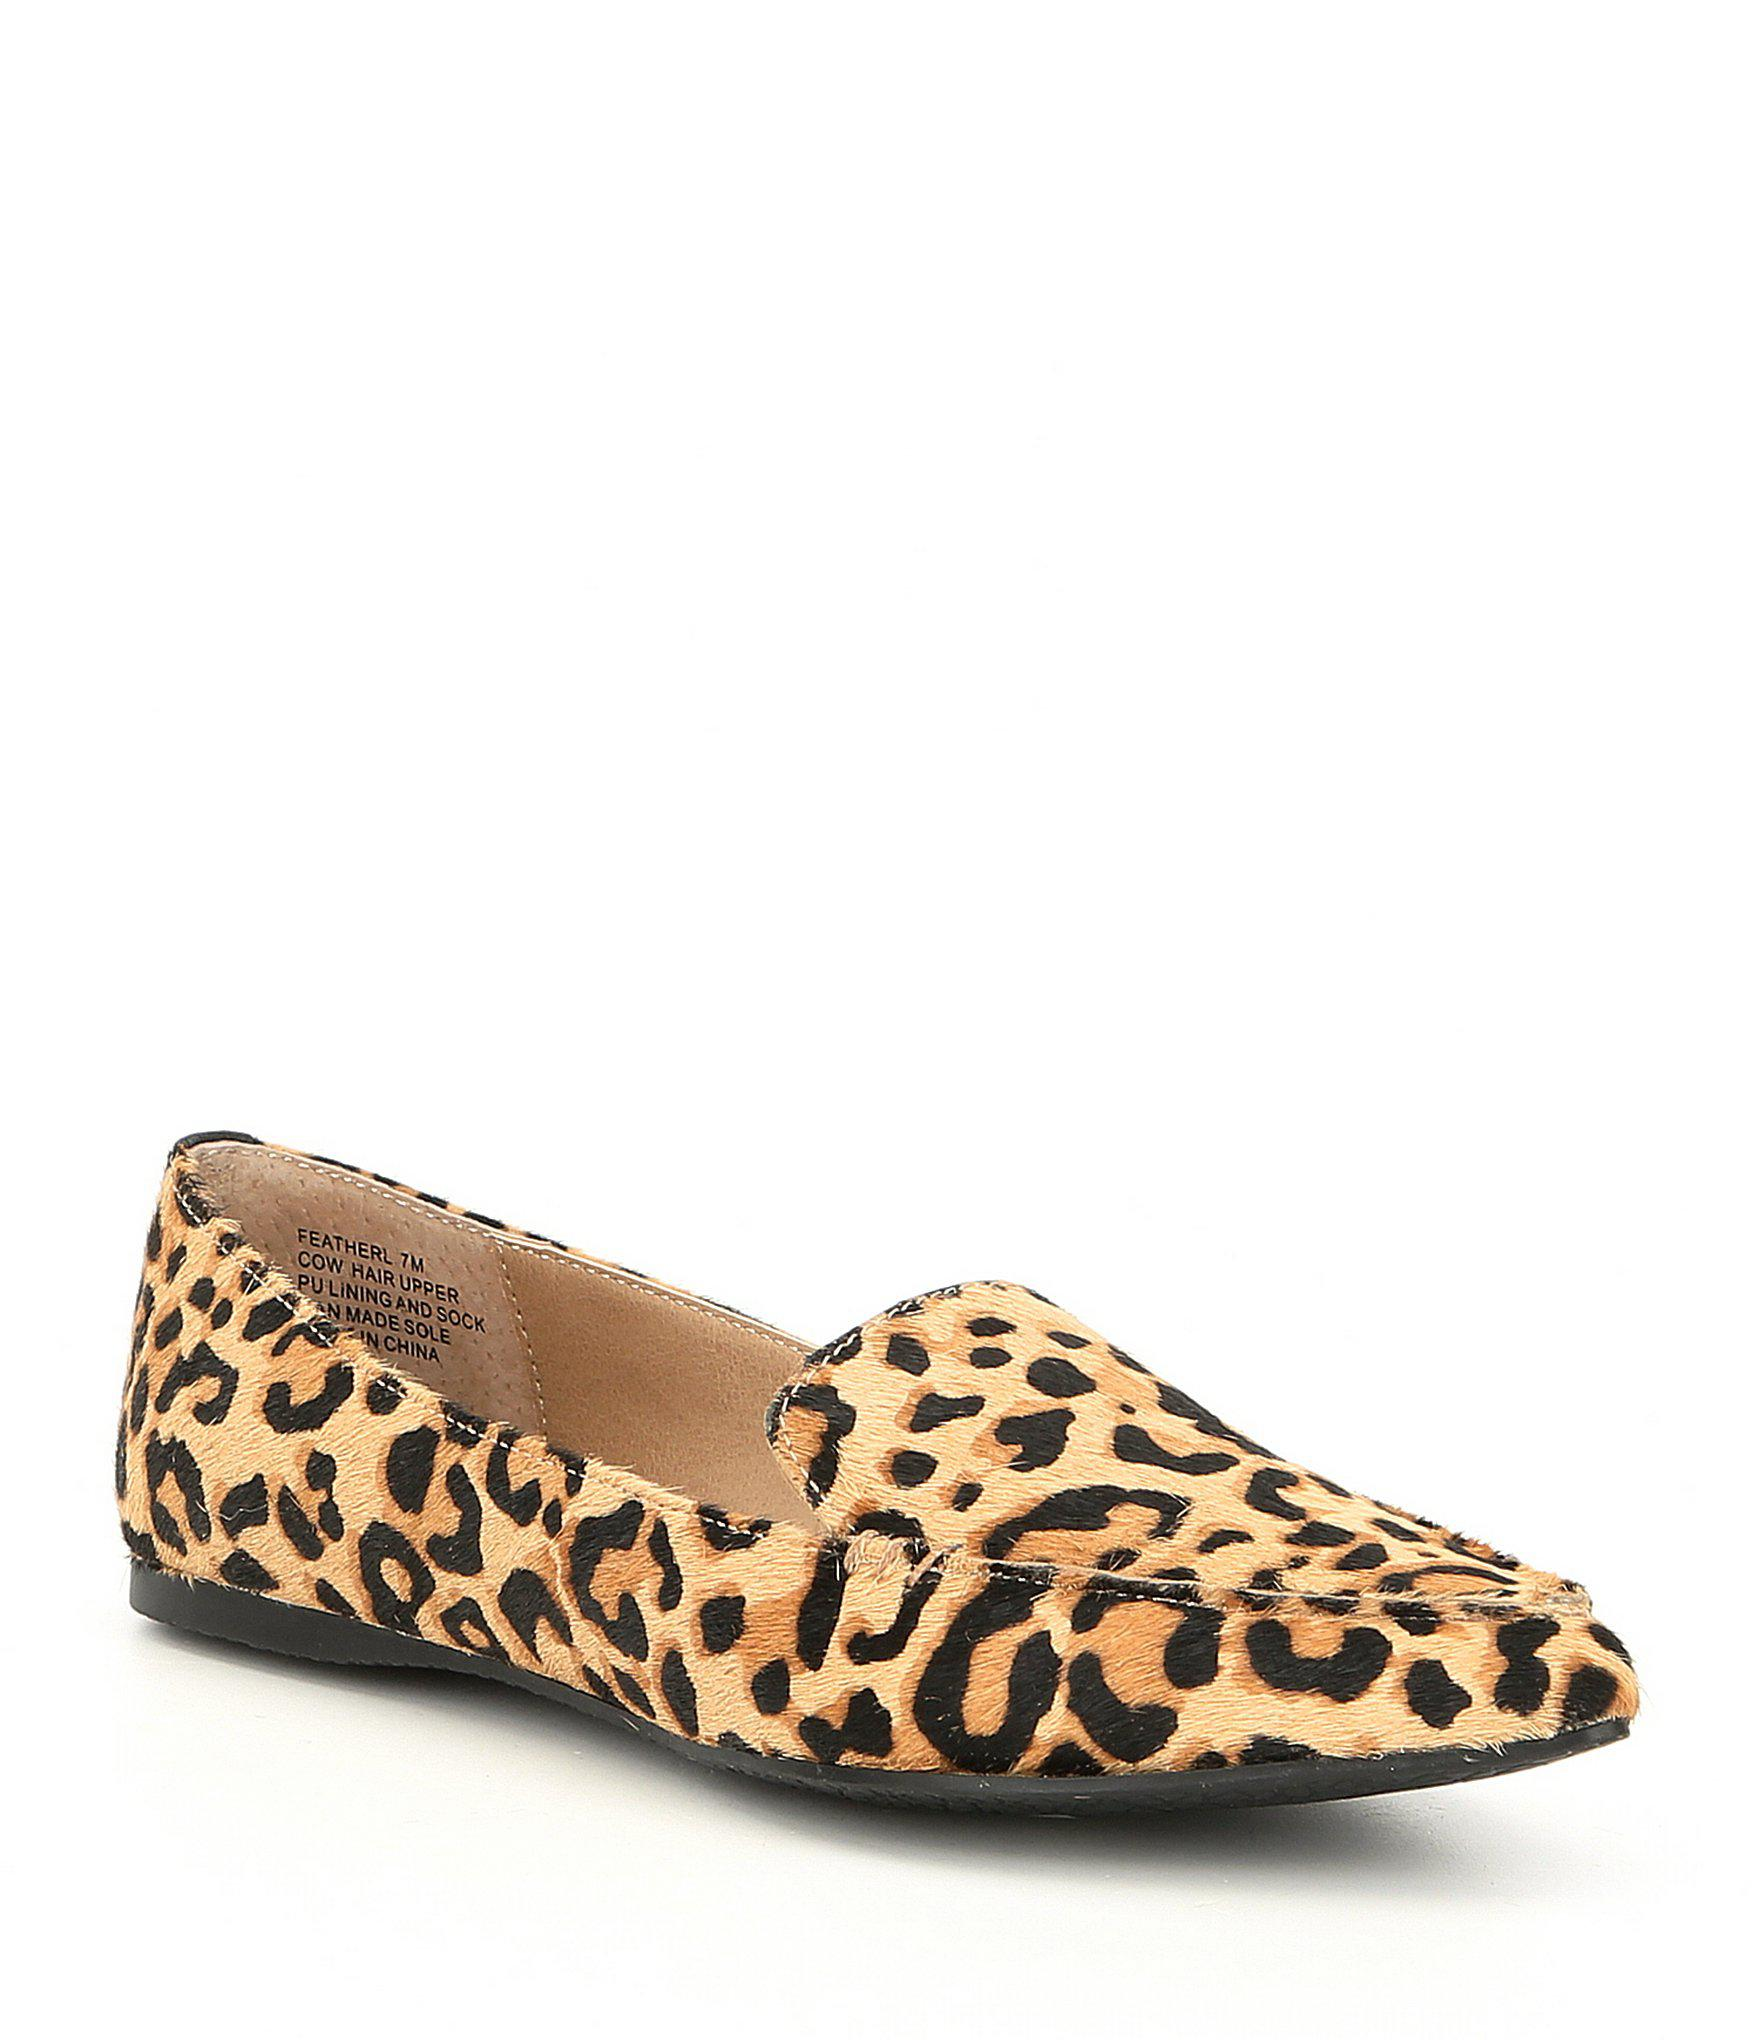 048cb3eafd4 Lyst - Steve Madden Feather Leopard Print Calf Hair Loafers in Brown